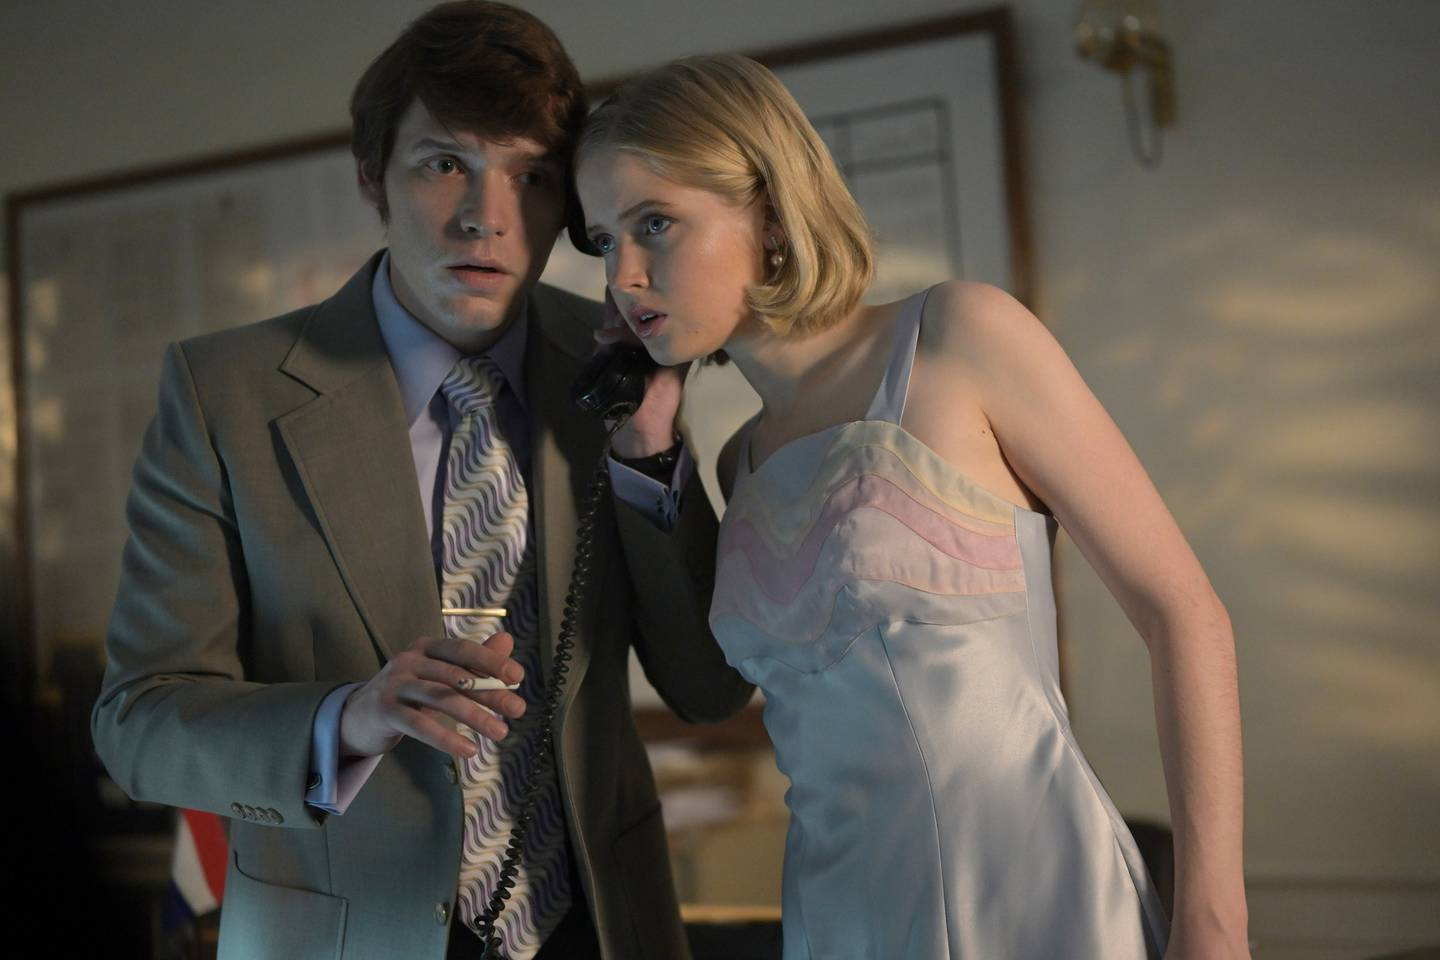 Billy Howle and Ellie Bamber play Herman and Angela Knippenberg. Photo: Netflix / Mammoth Screen Ltd